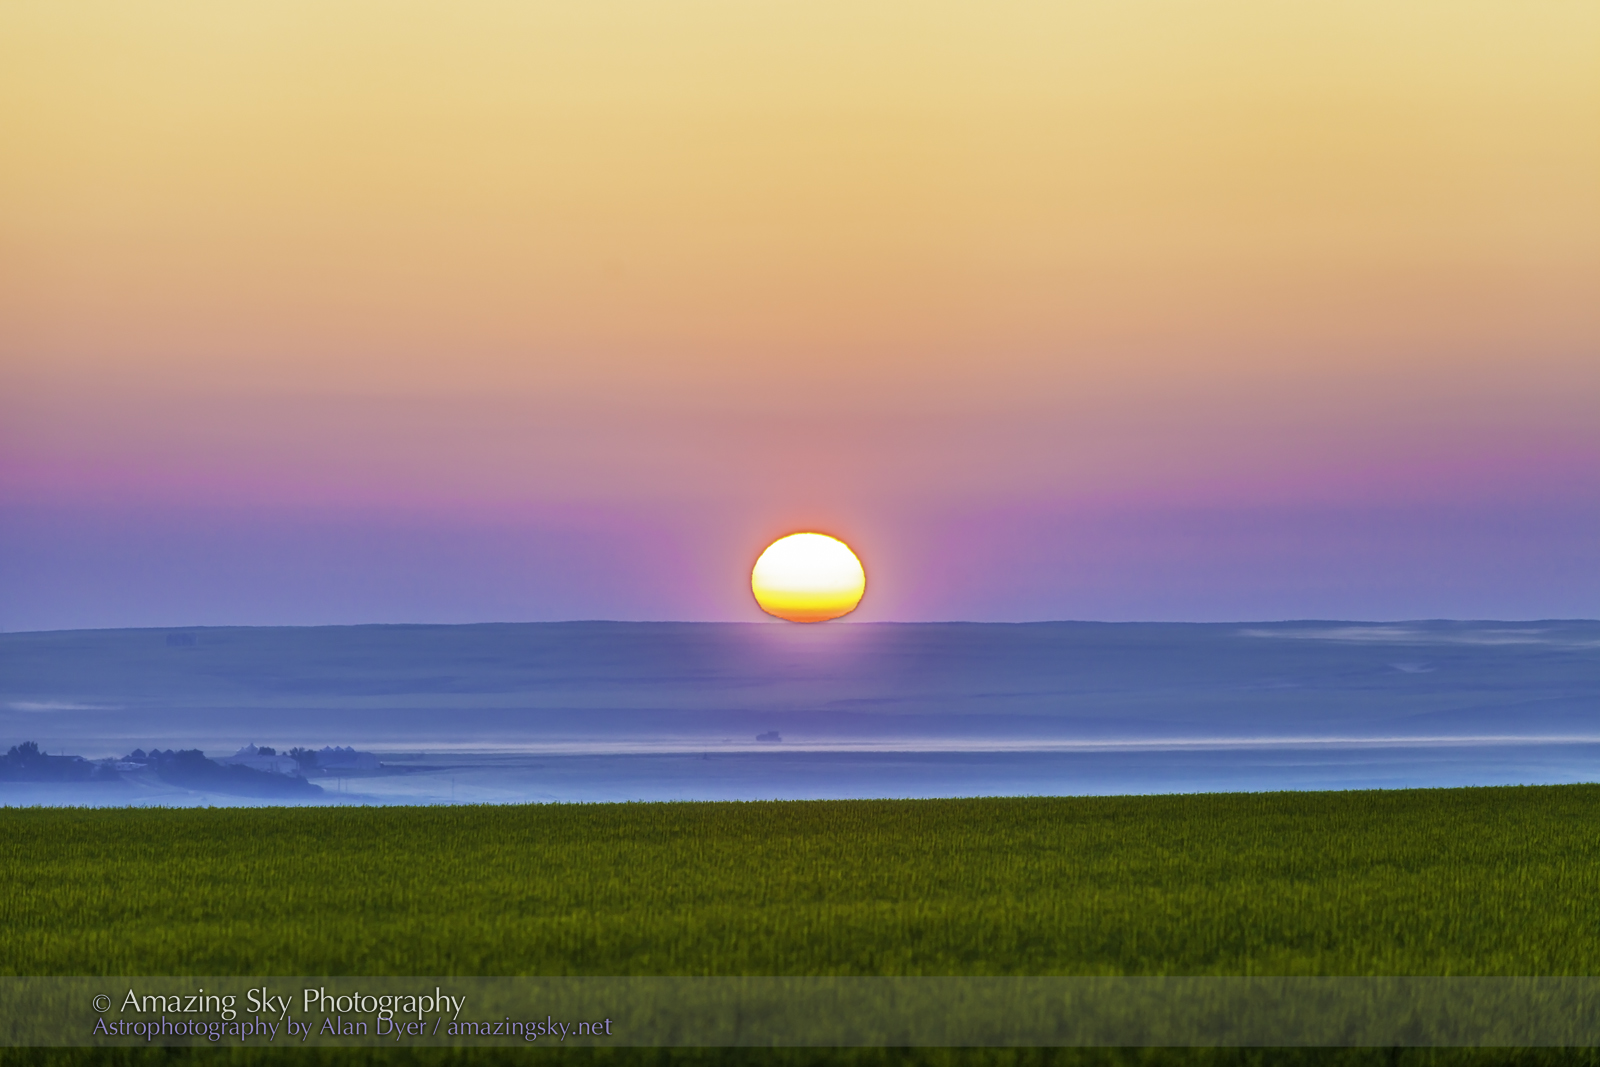 Sunrise on a Canola Field (July 9, 2013)